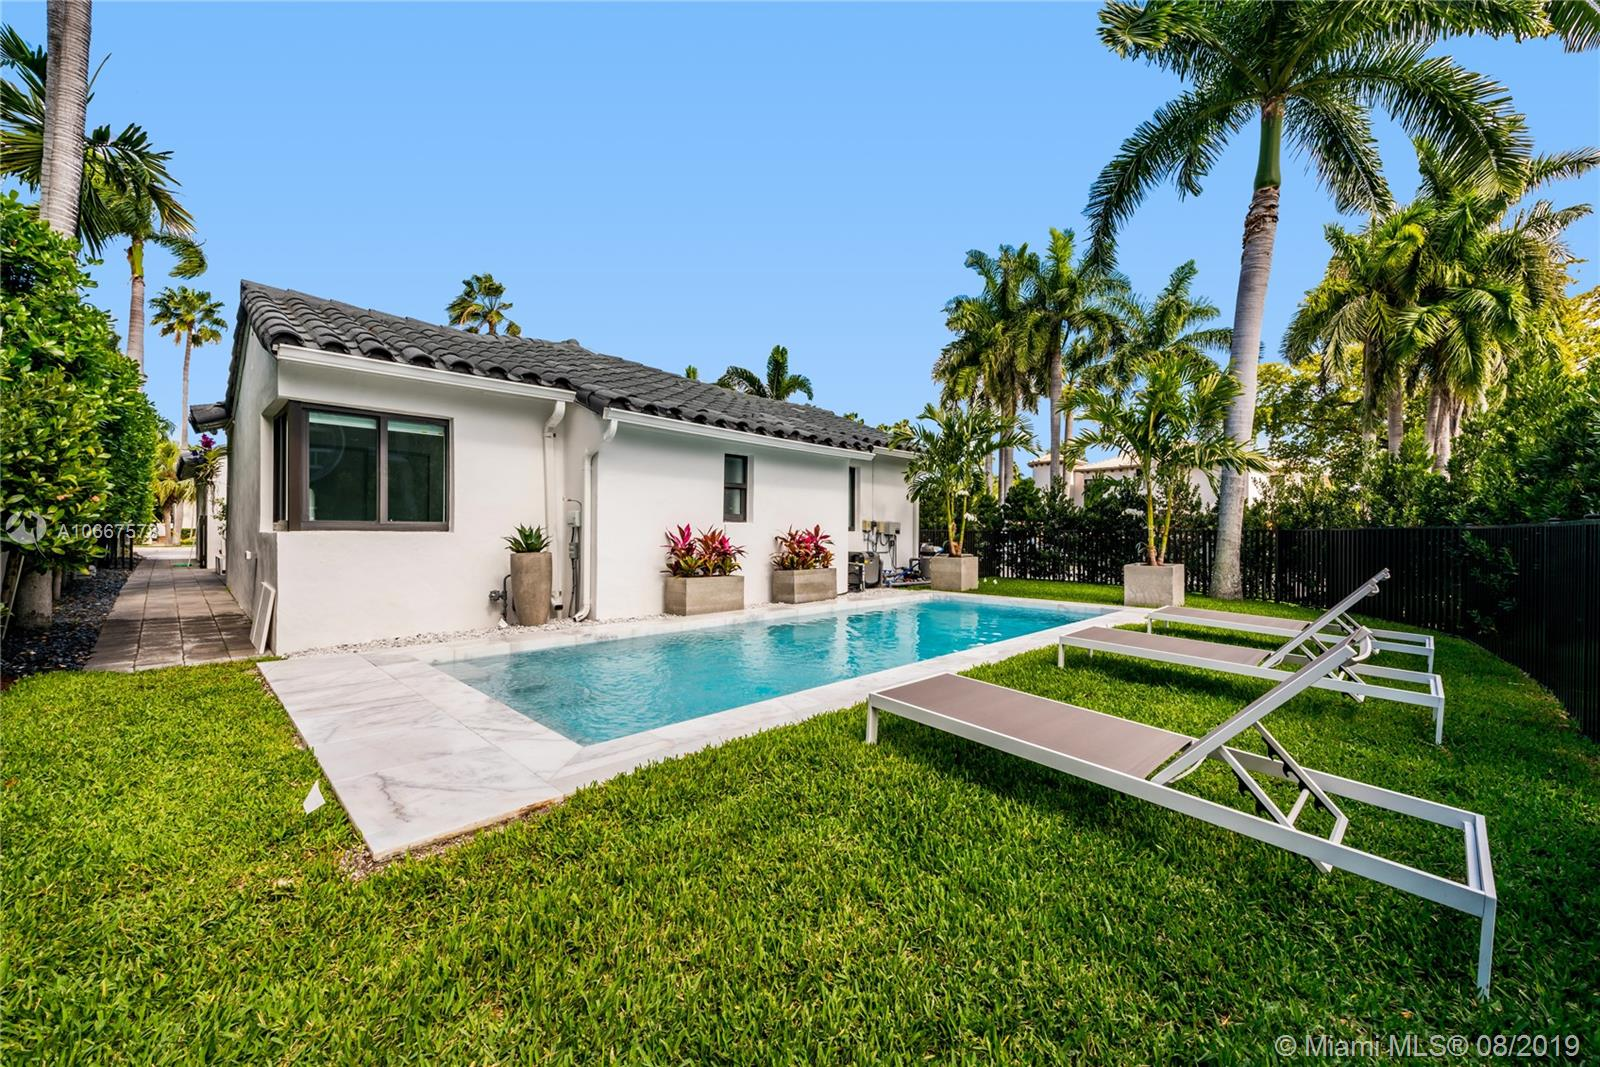 259 Coconut ln- miami-beach-fl-33139-a10667578-Pic01